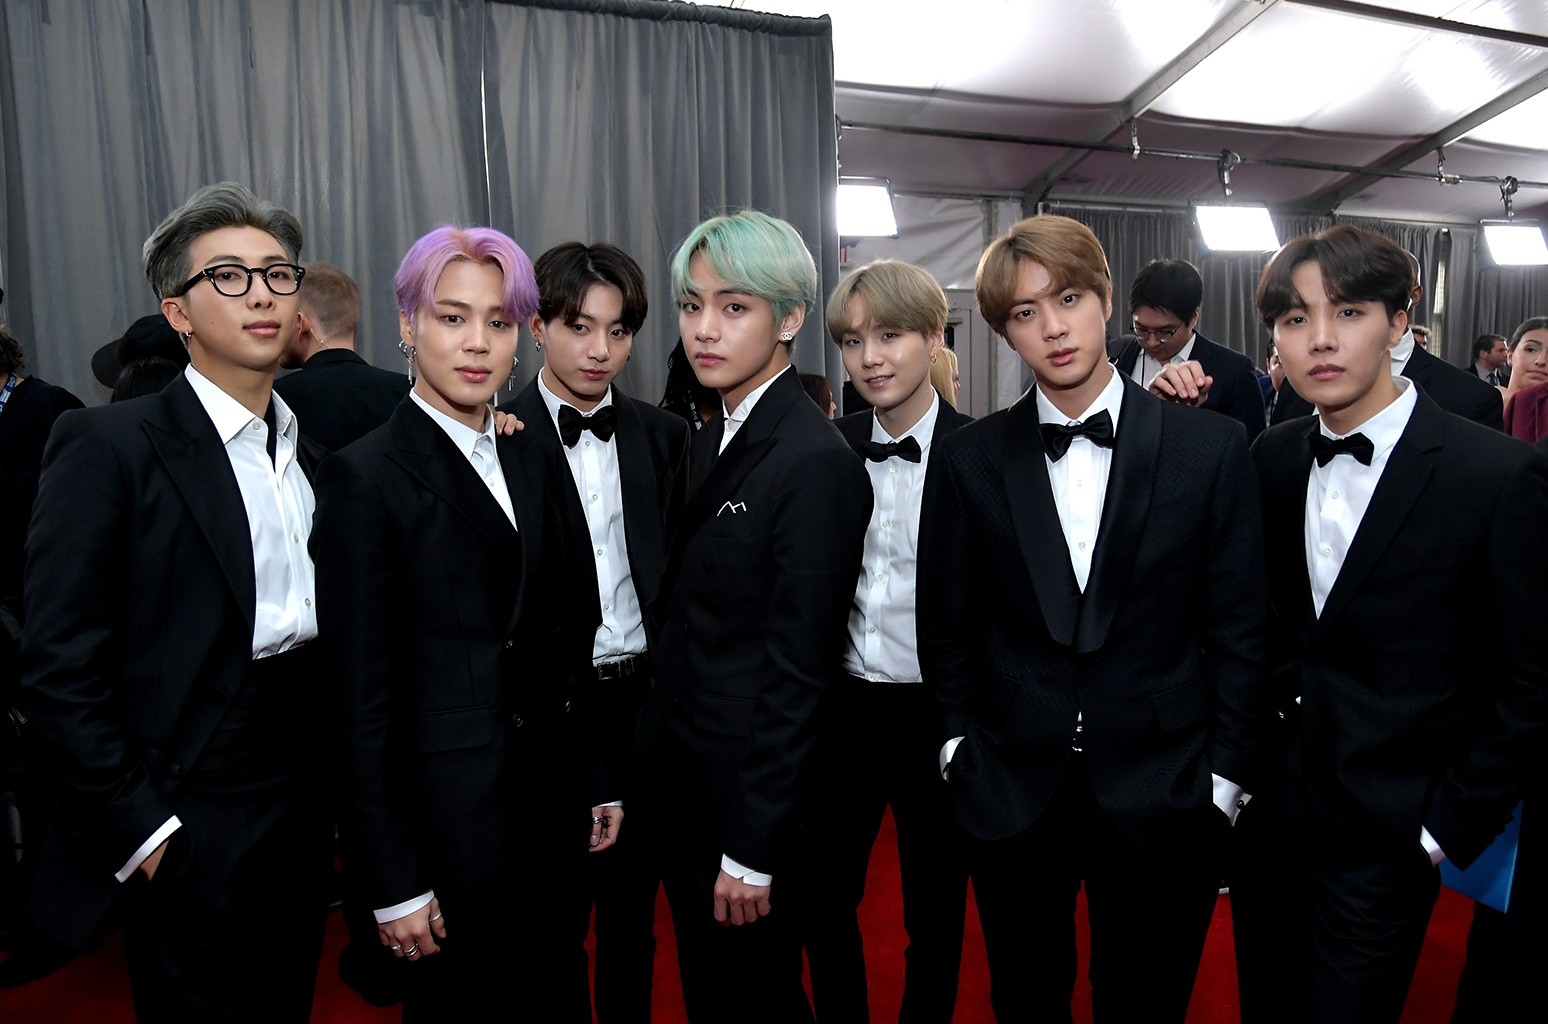 Bts At The 2019 Grammys Red Carpet See The Photos Billboard Billboard